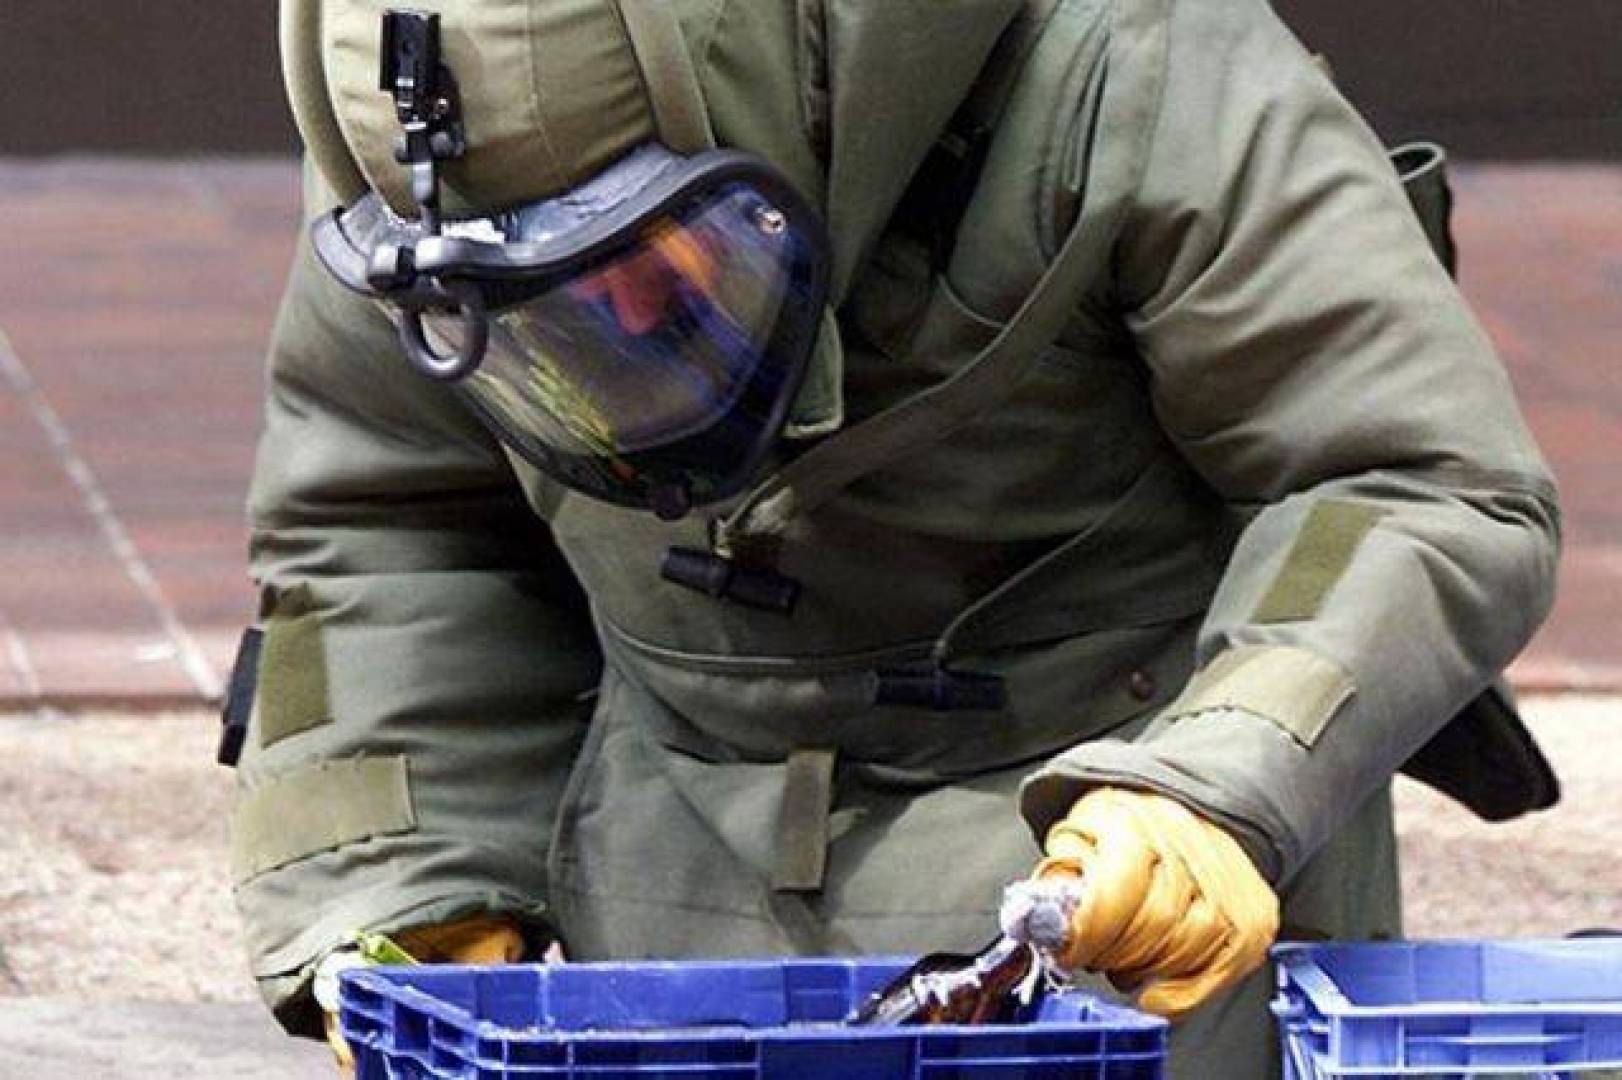 8-most-dangerous-jobs-91_970794_highres